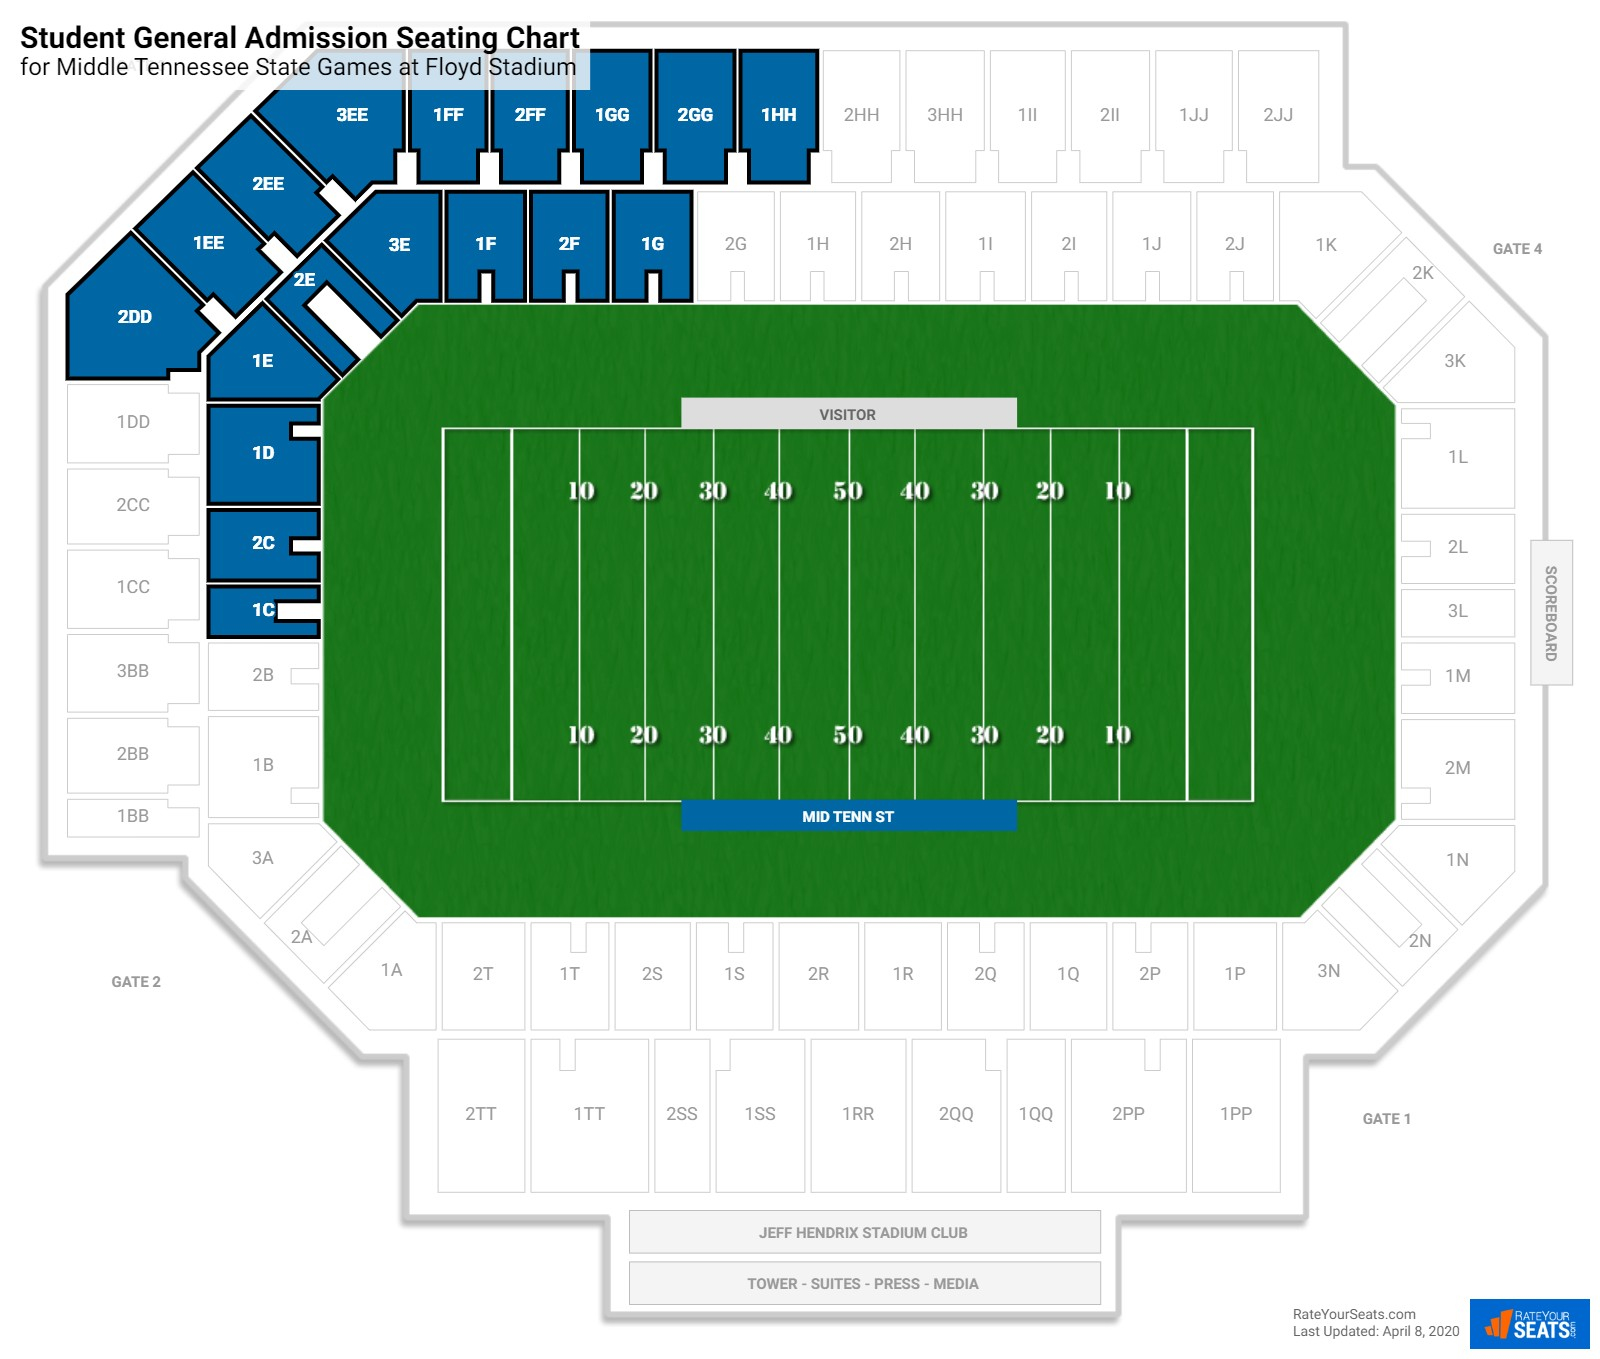 Floyd Stadium Student General Admission seating chart